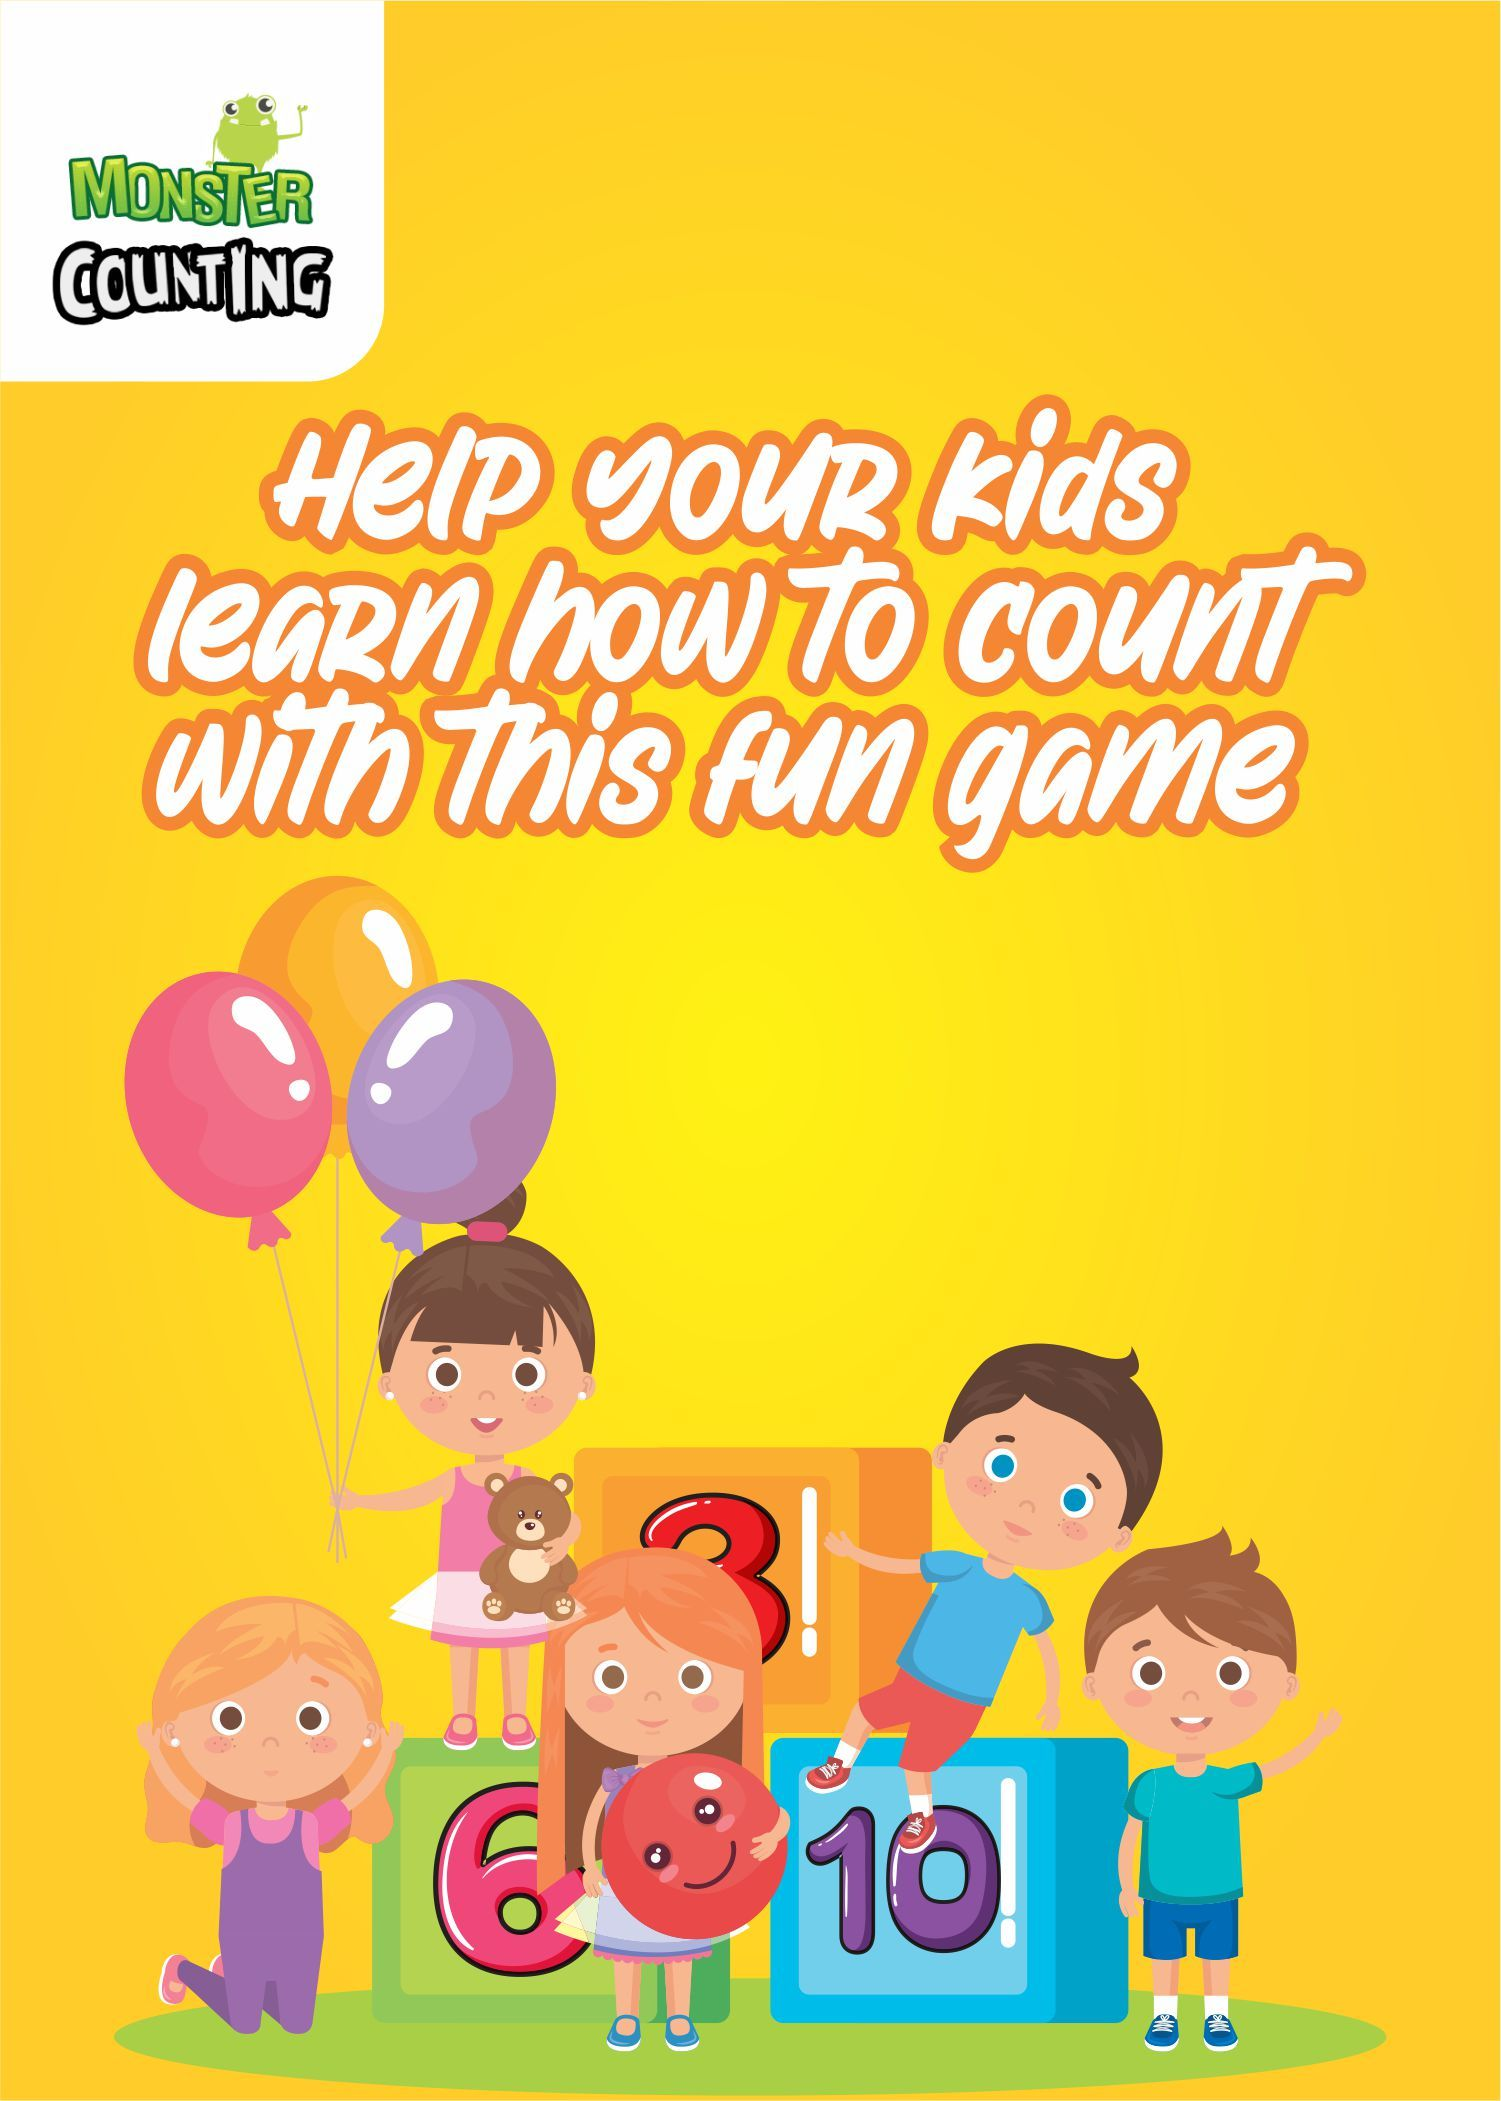 Make counting a fun activity for your kid with this